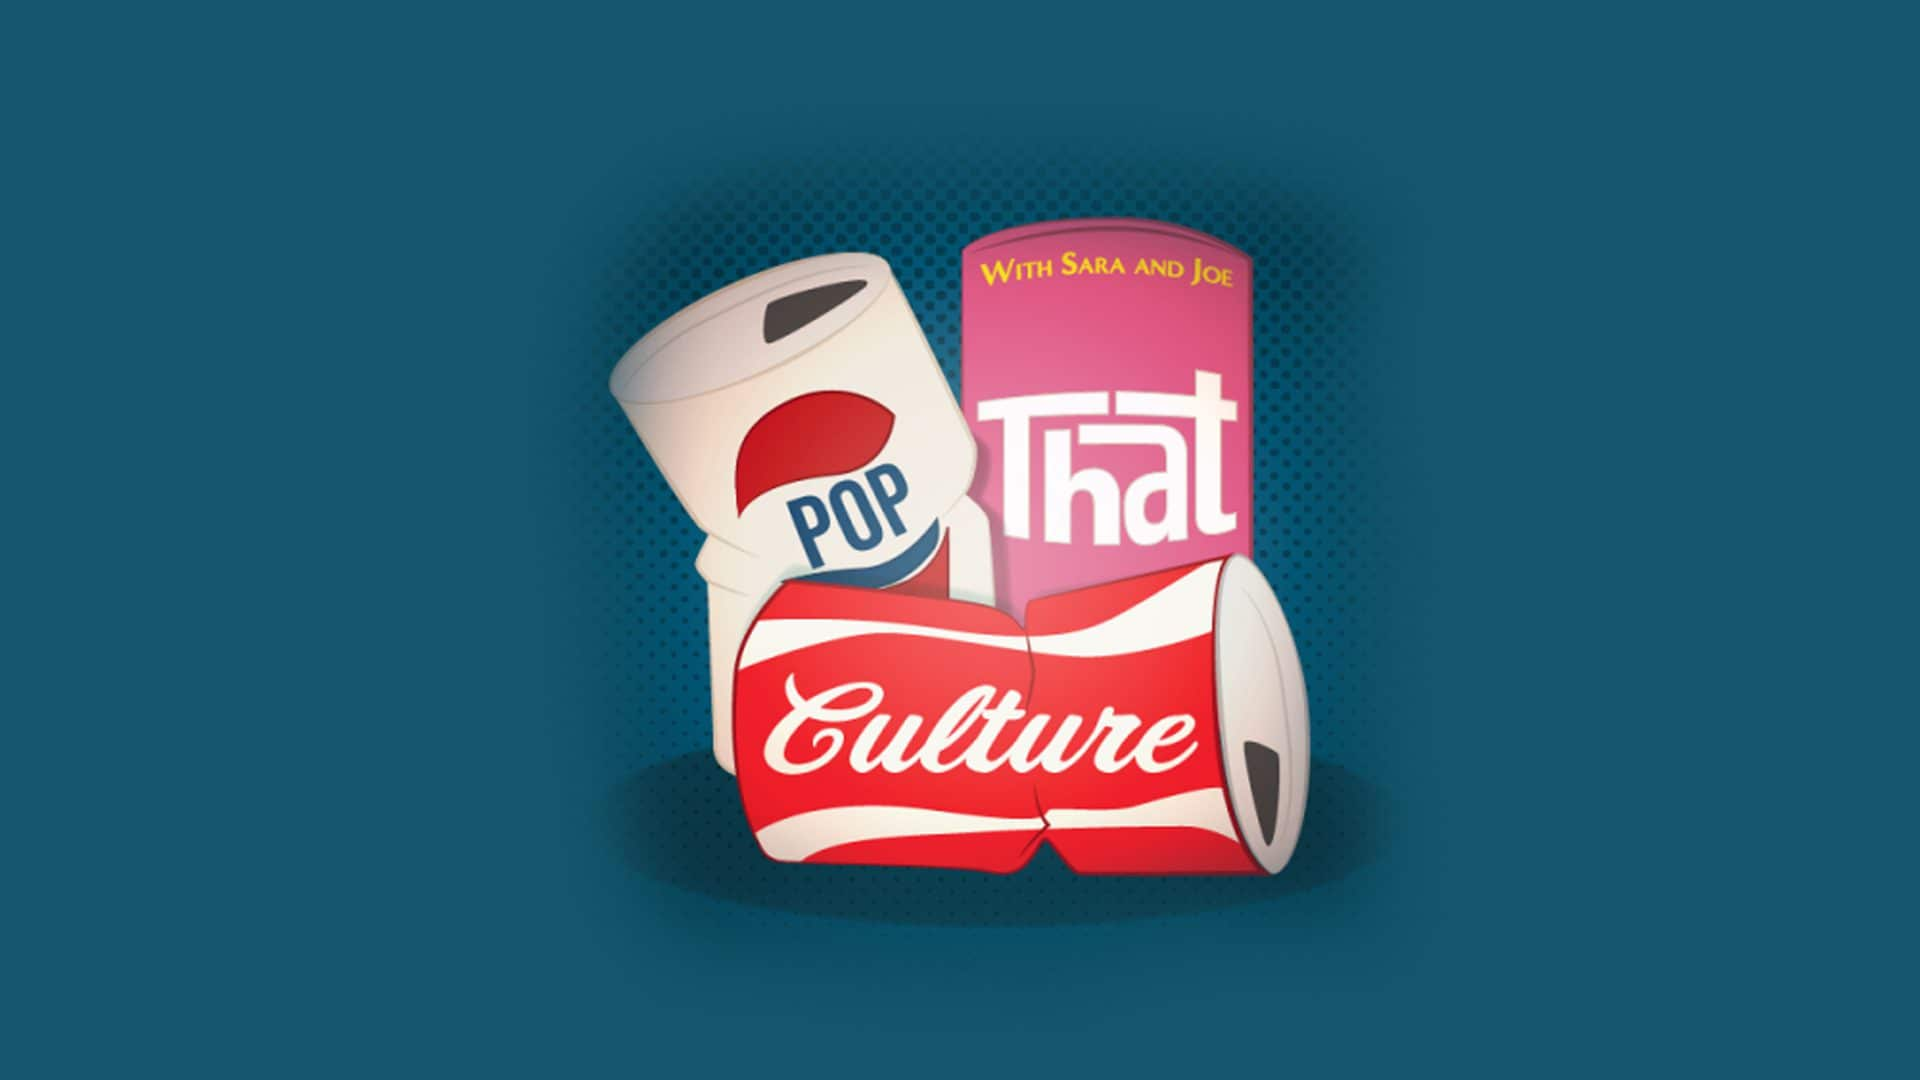 Pop That Culture - Episode 130